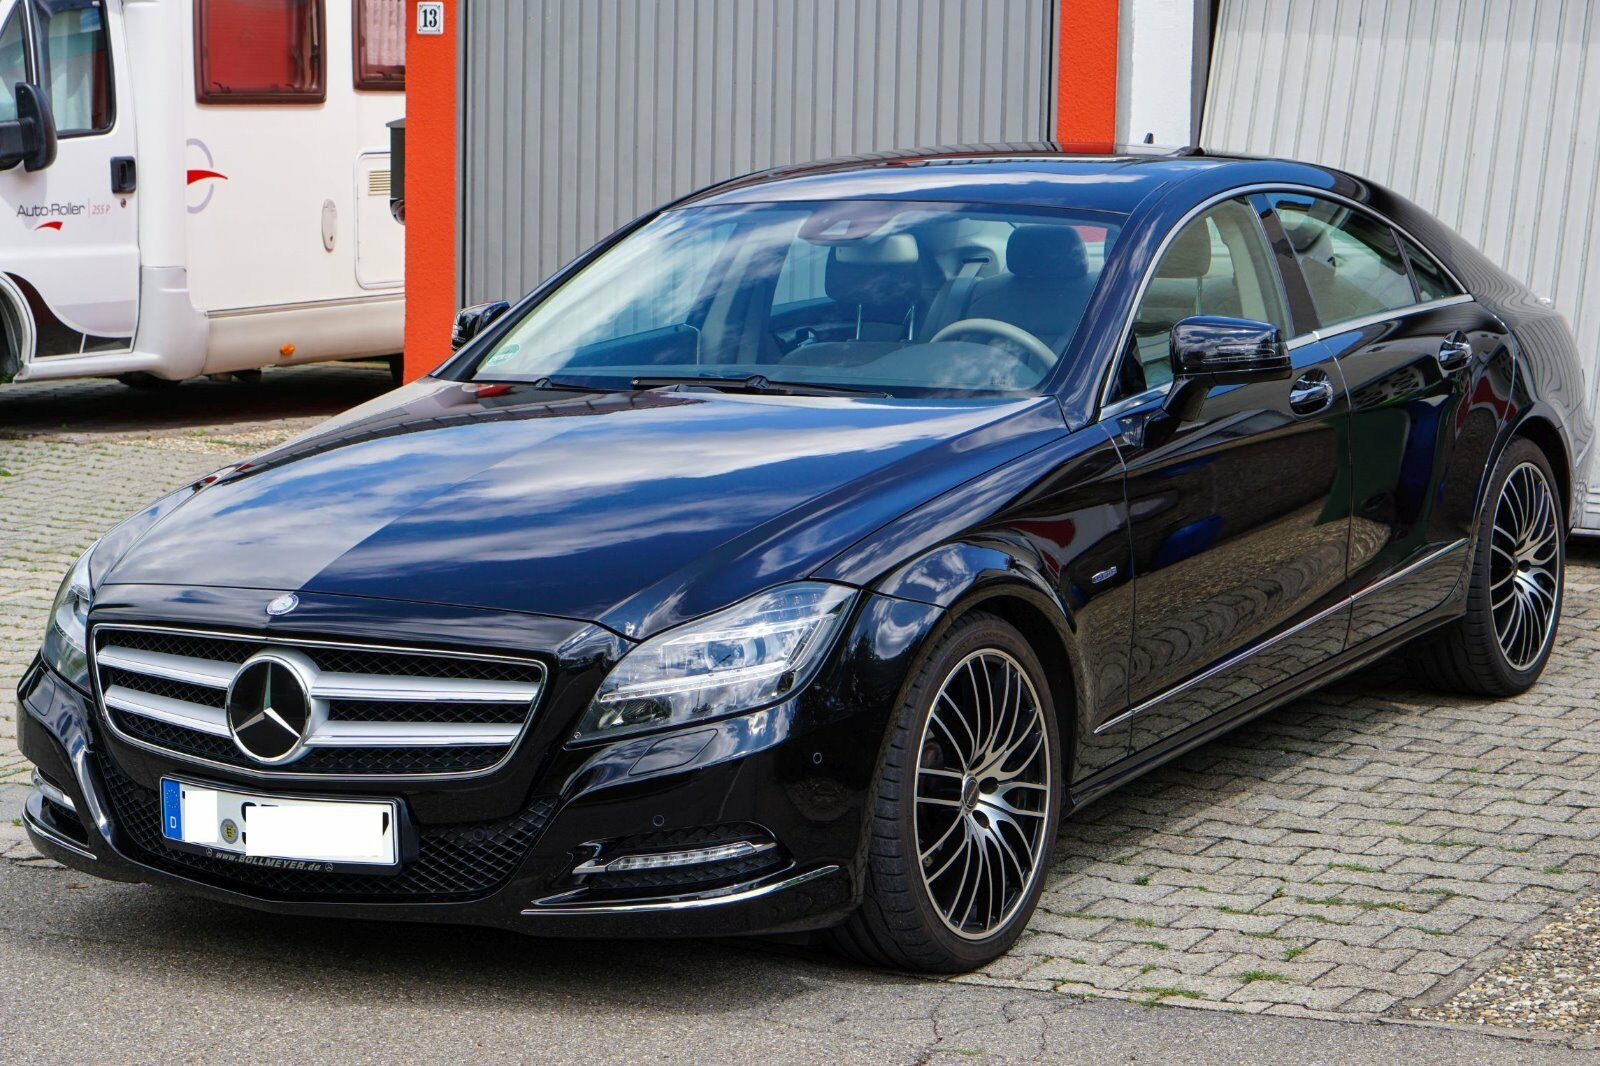 mercedes cls 350 cdi w218 vollaustattung 2jahre junge. Black Bedroom Furniture Sets. Home Design Ideas